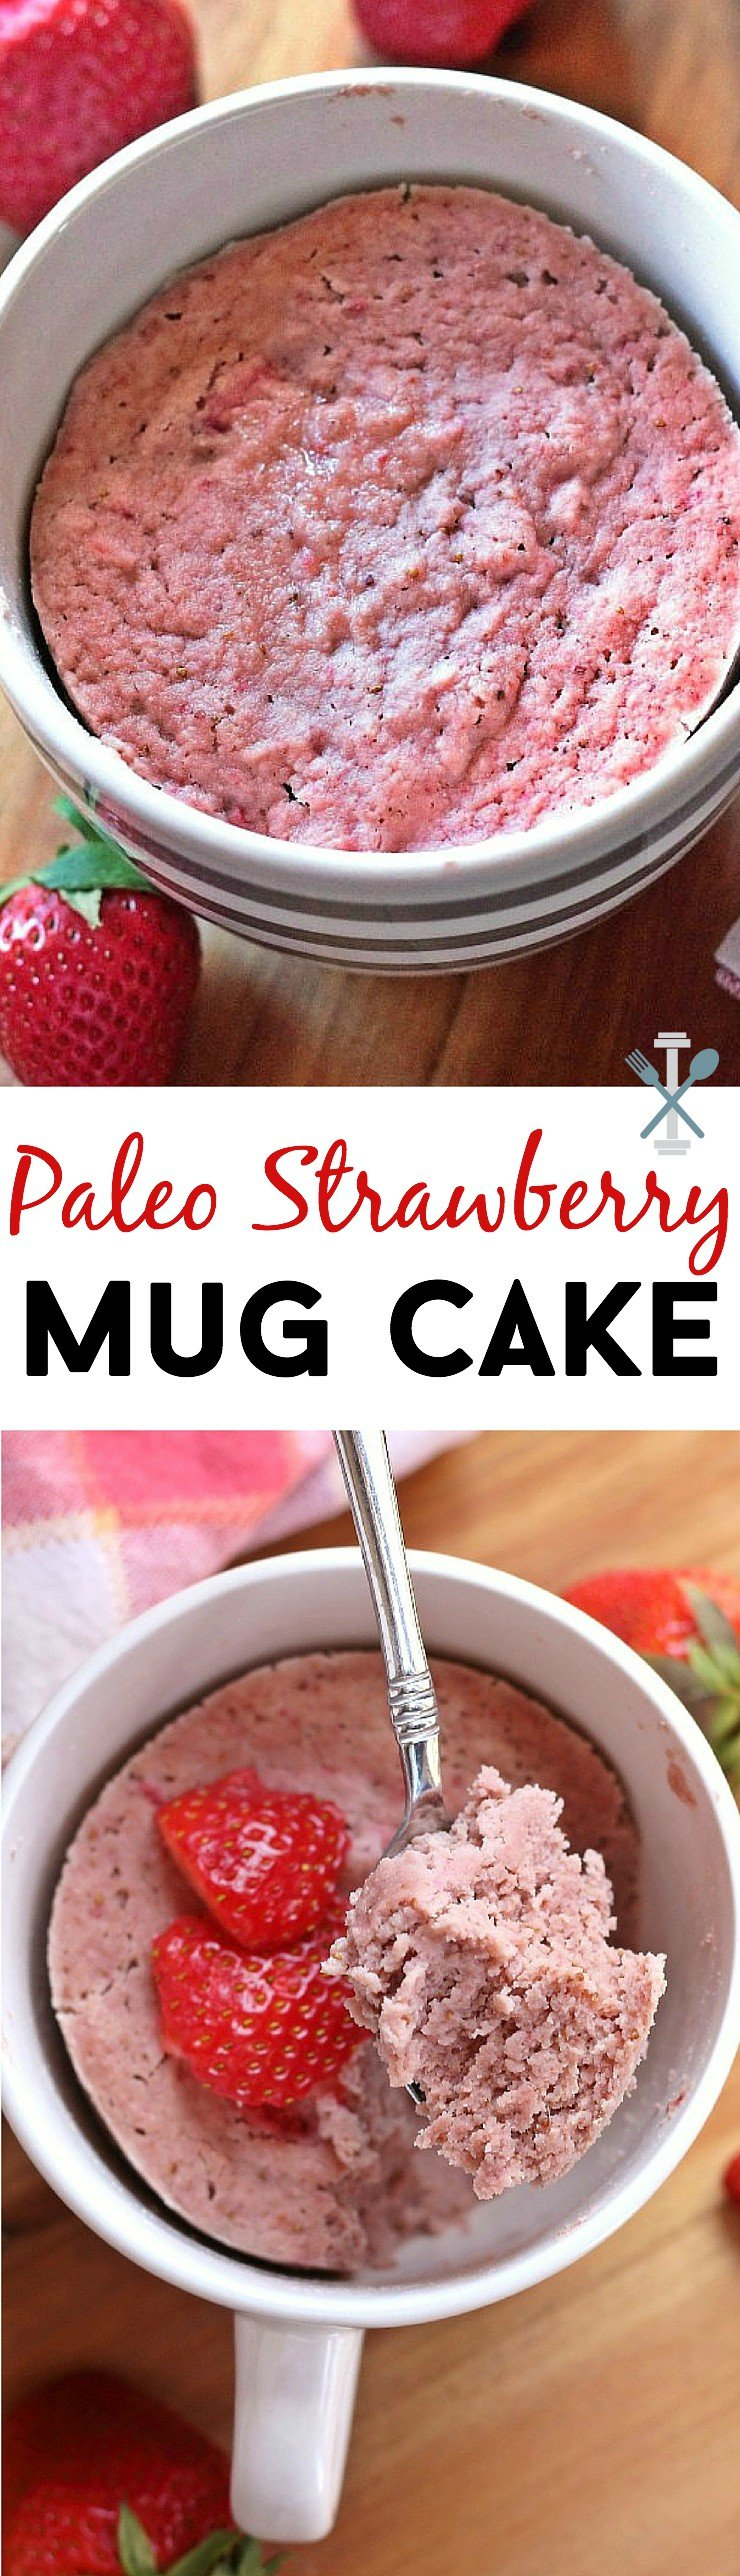 This single serve, 5-minute, paleo strawberry mug cake is so light and fluffy, it will please any strawberry lover! Gluten-free, dairy-free, and refined-sugar free.